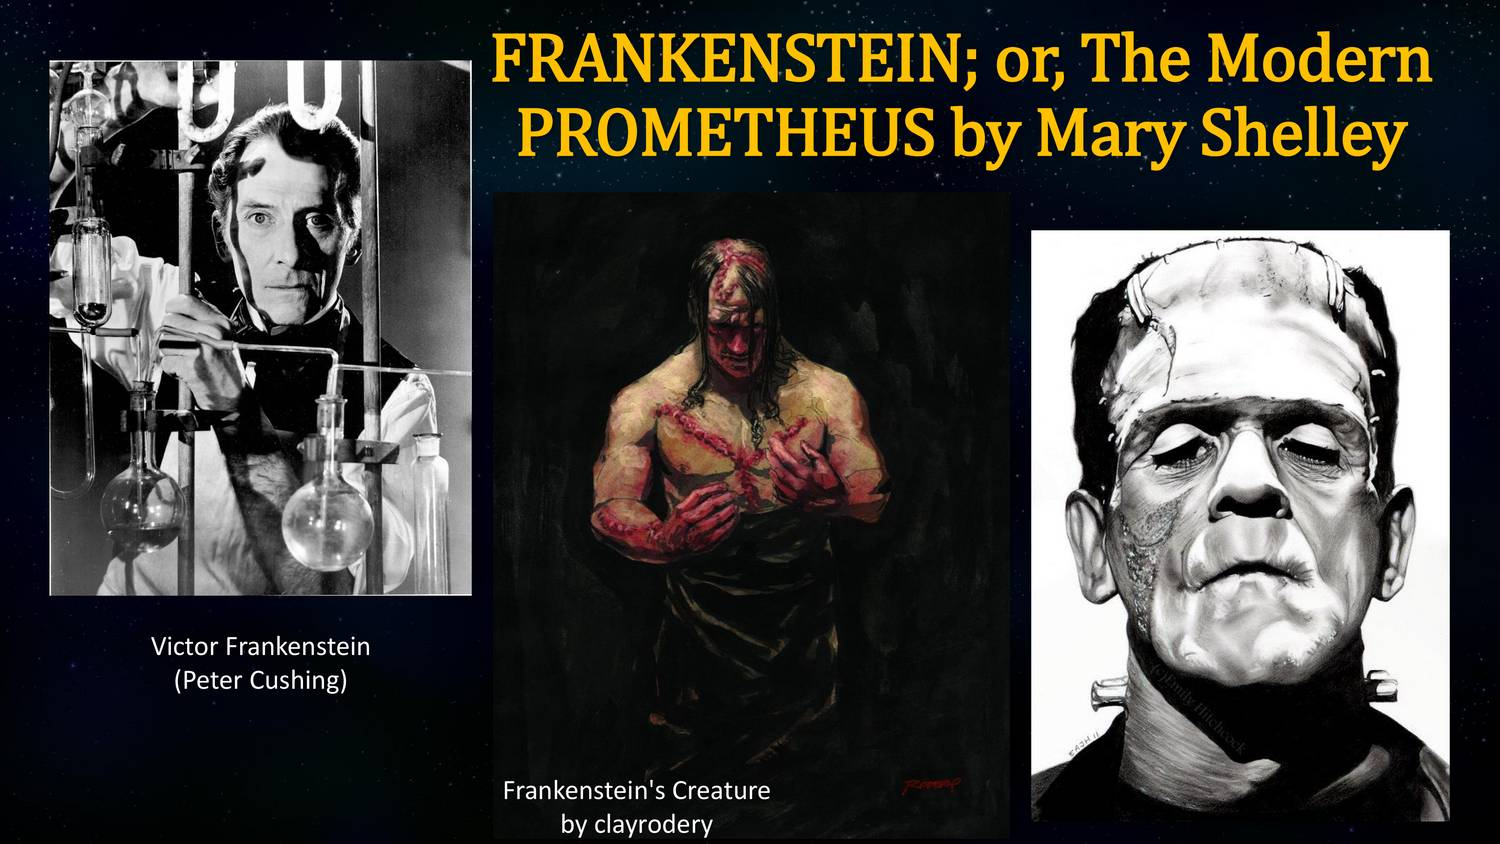 a comparison of prometheus and victor frankenstein from frankenstein by mary shelley